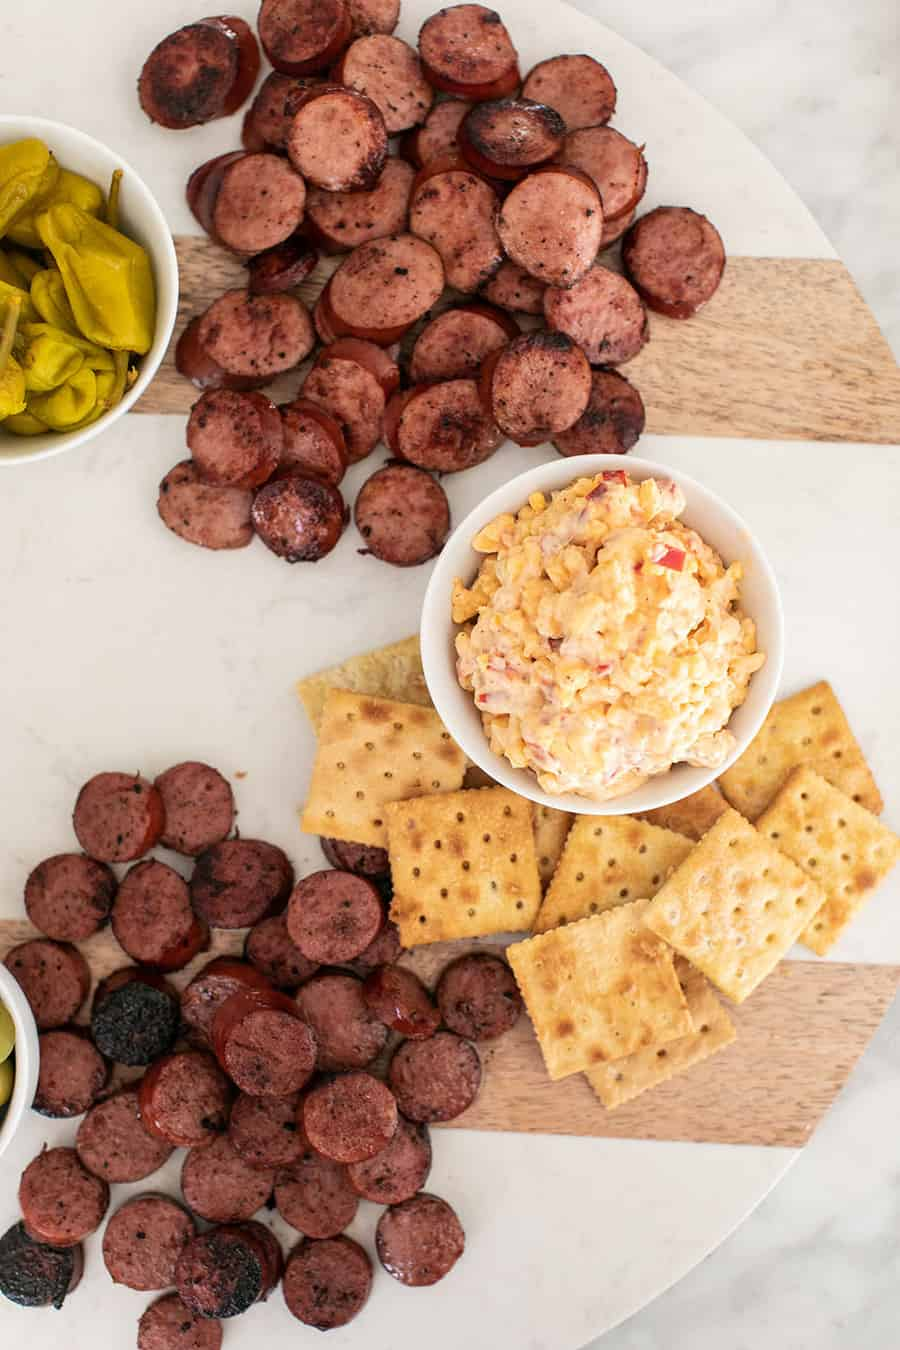 Pimento cheese and sausage on a platter.